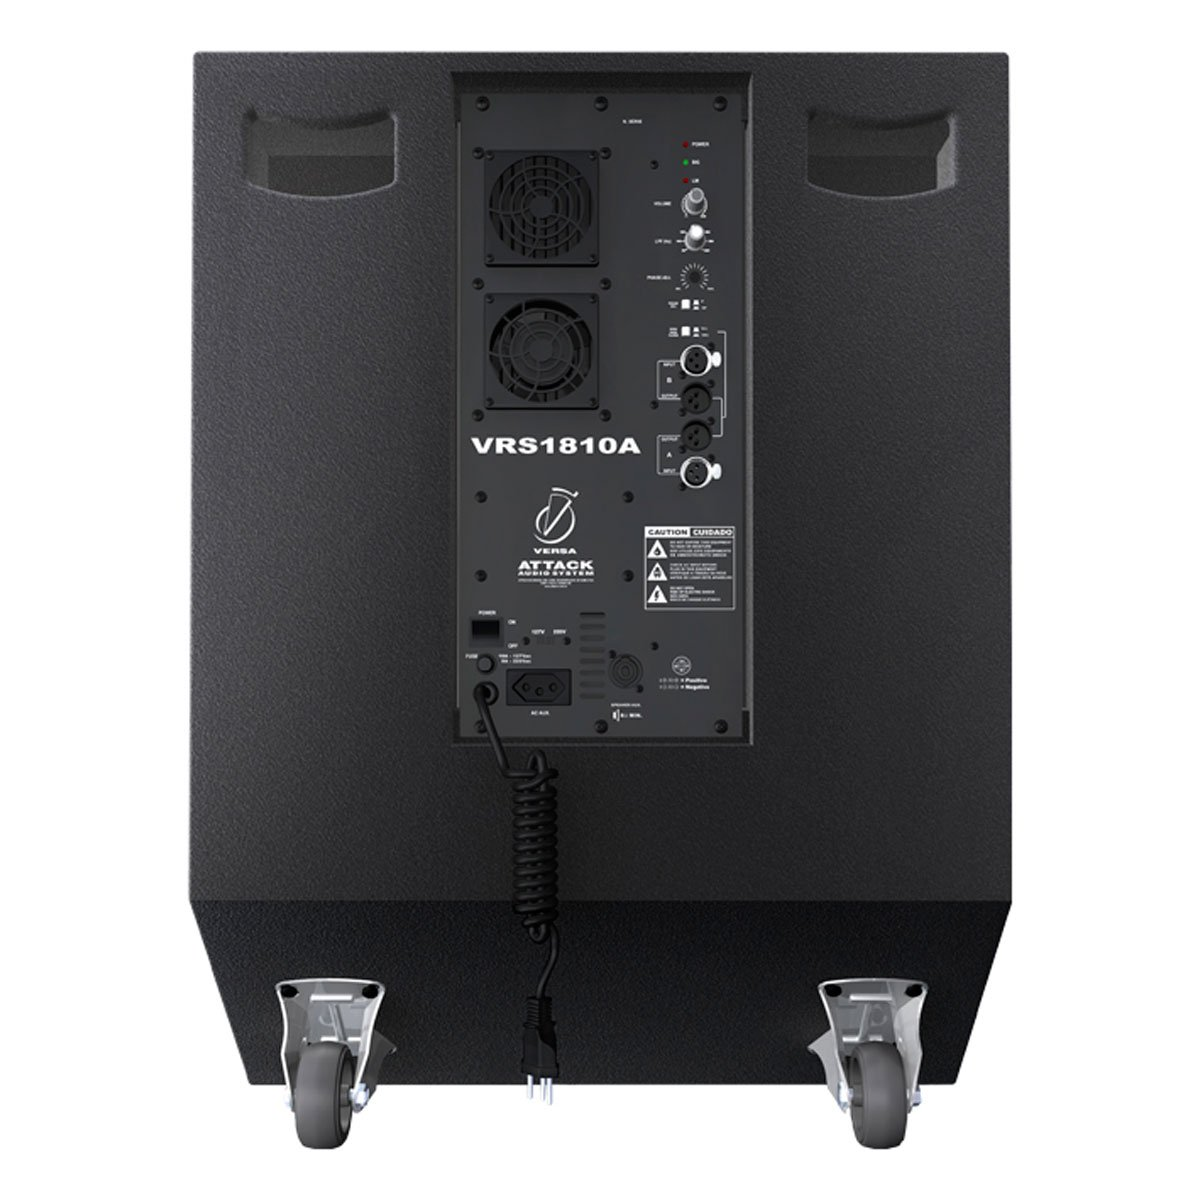 Subwoofer Ativo Fal 18 Pol 1000W VRS 1810 A - Attack